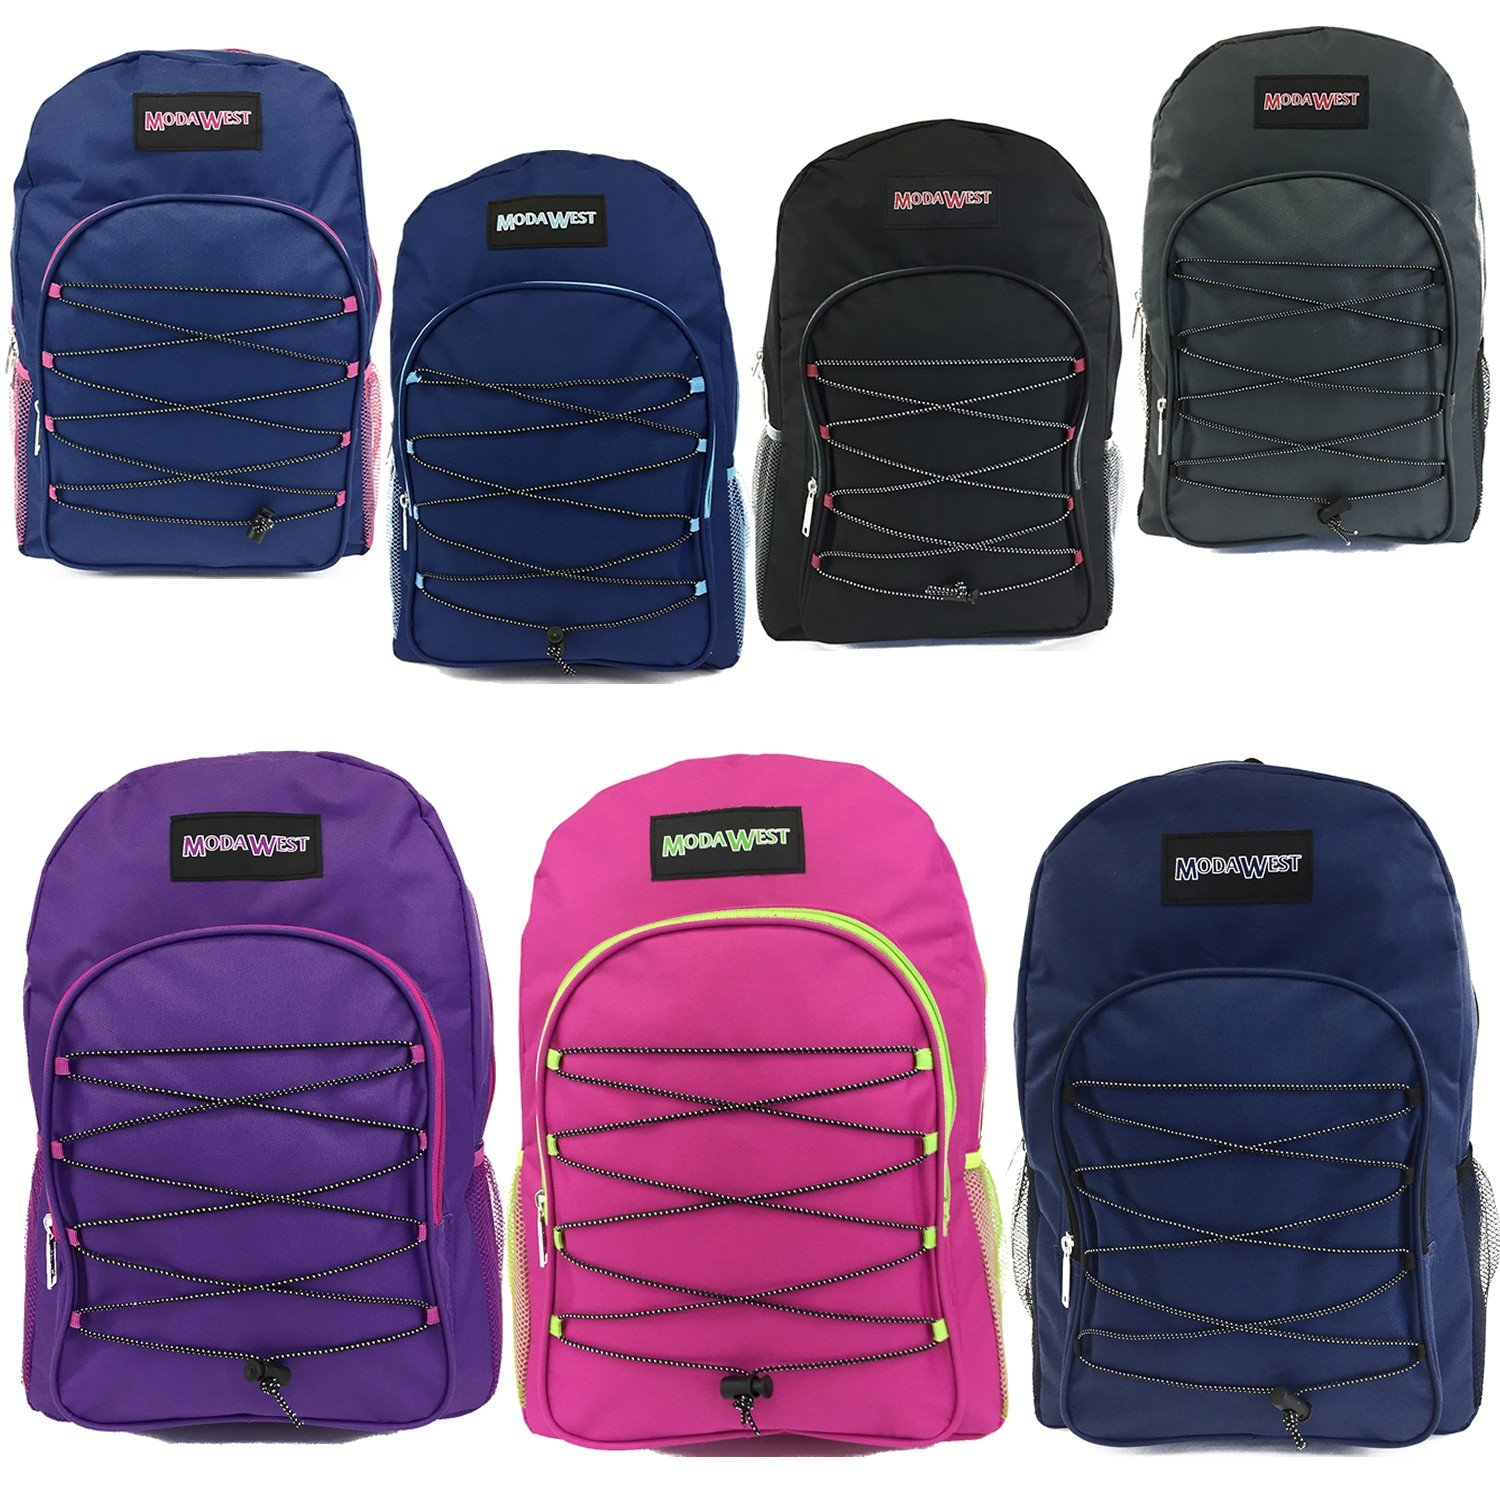 Wholesale 19'' Bungee Design Backpack In 7 Assorted Colors - Case of 24 by Moda West